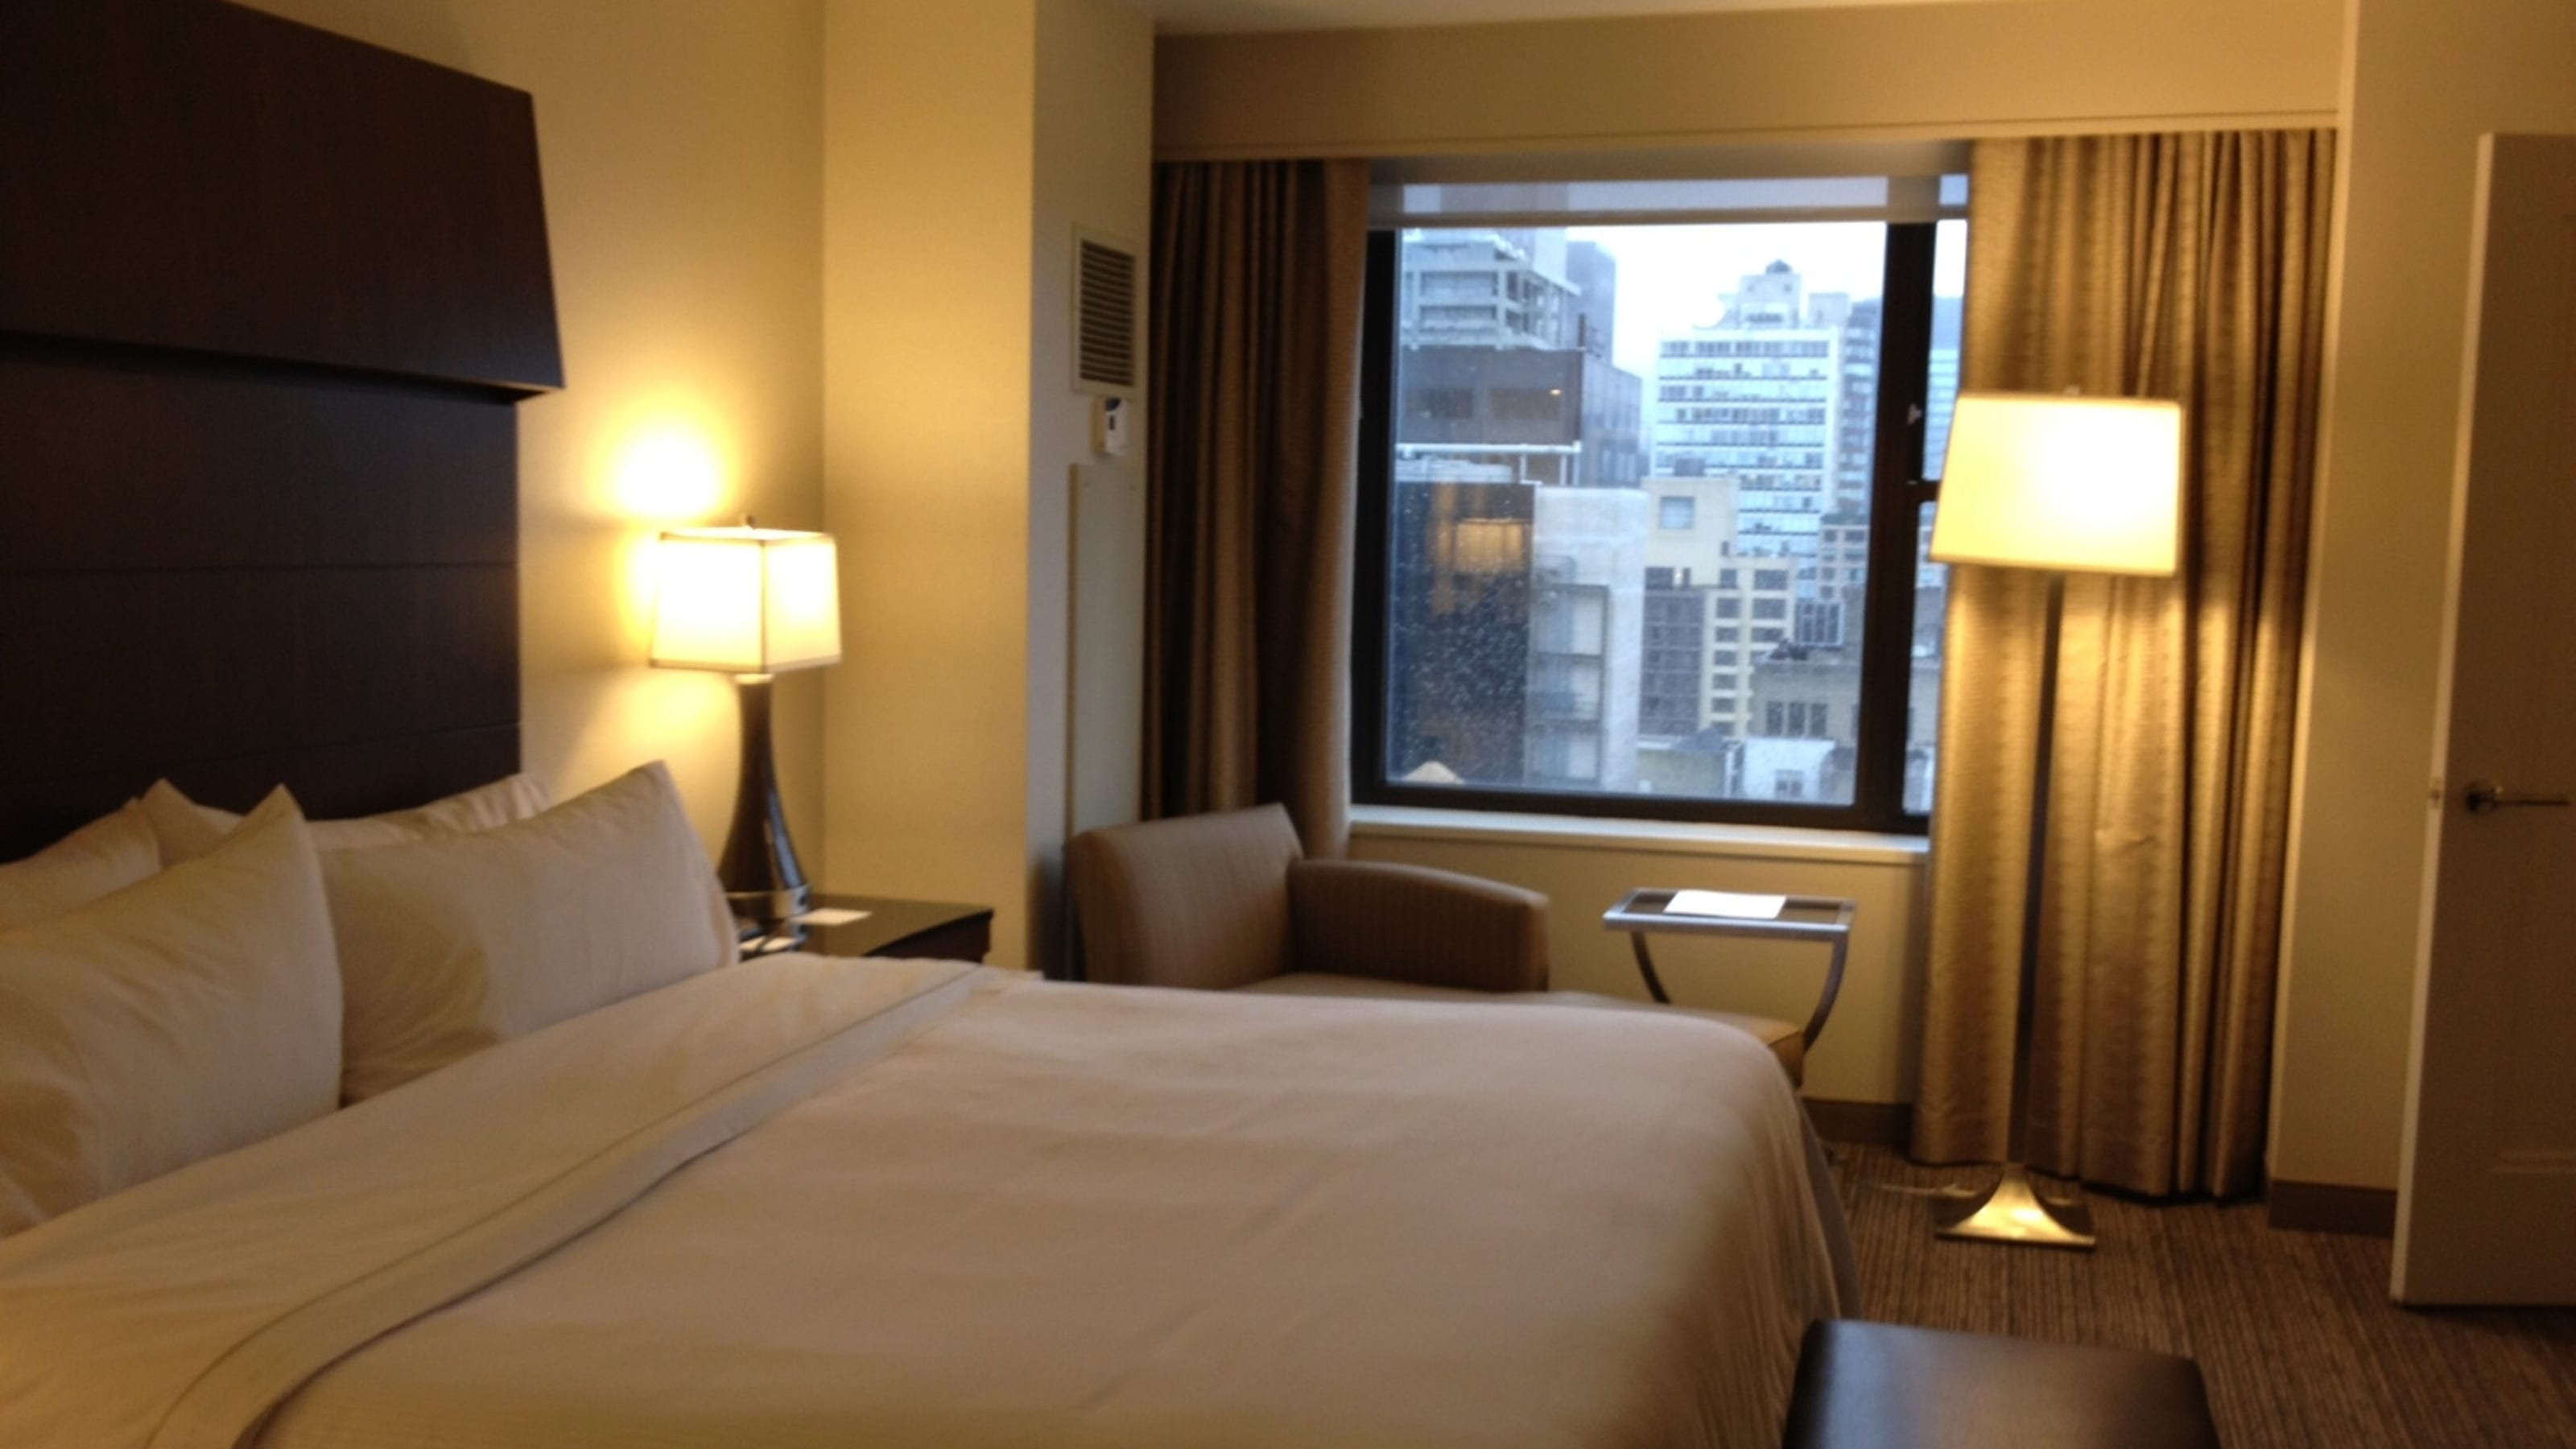 Westin Hotel Grand Central Station